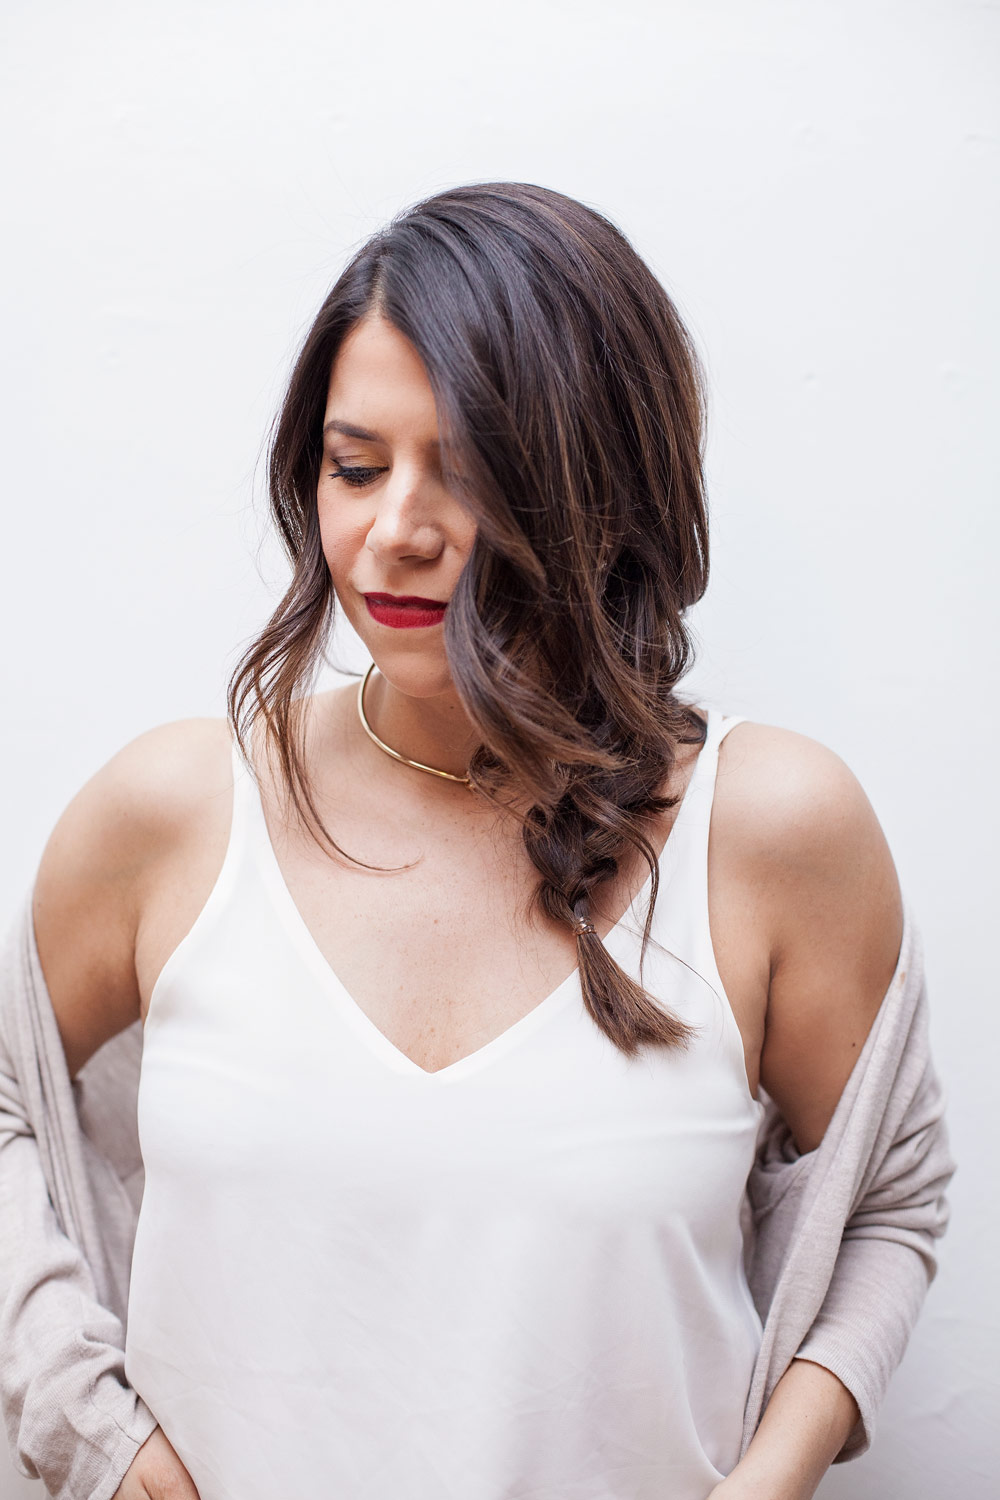 Messy Side Braid Easy hairstyles for New Year's Eve Braid tutorial how to style your hair this season Corporate Catwalk New York City